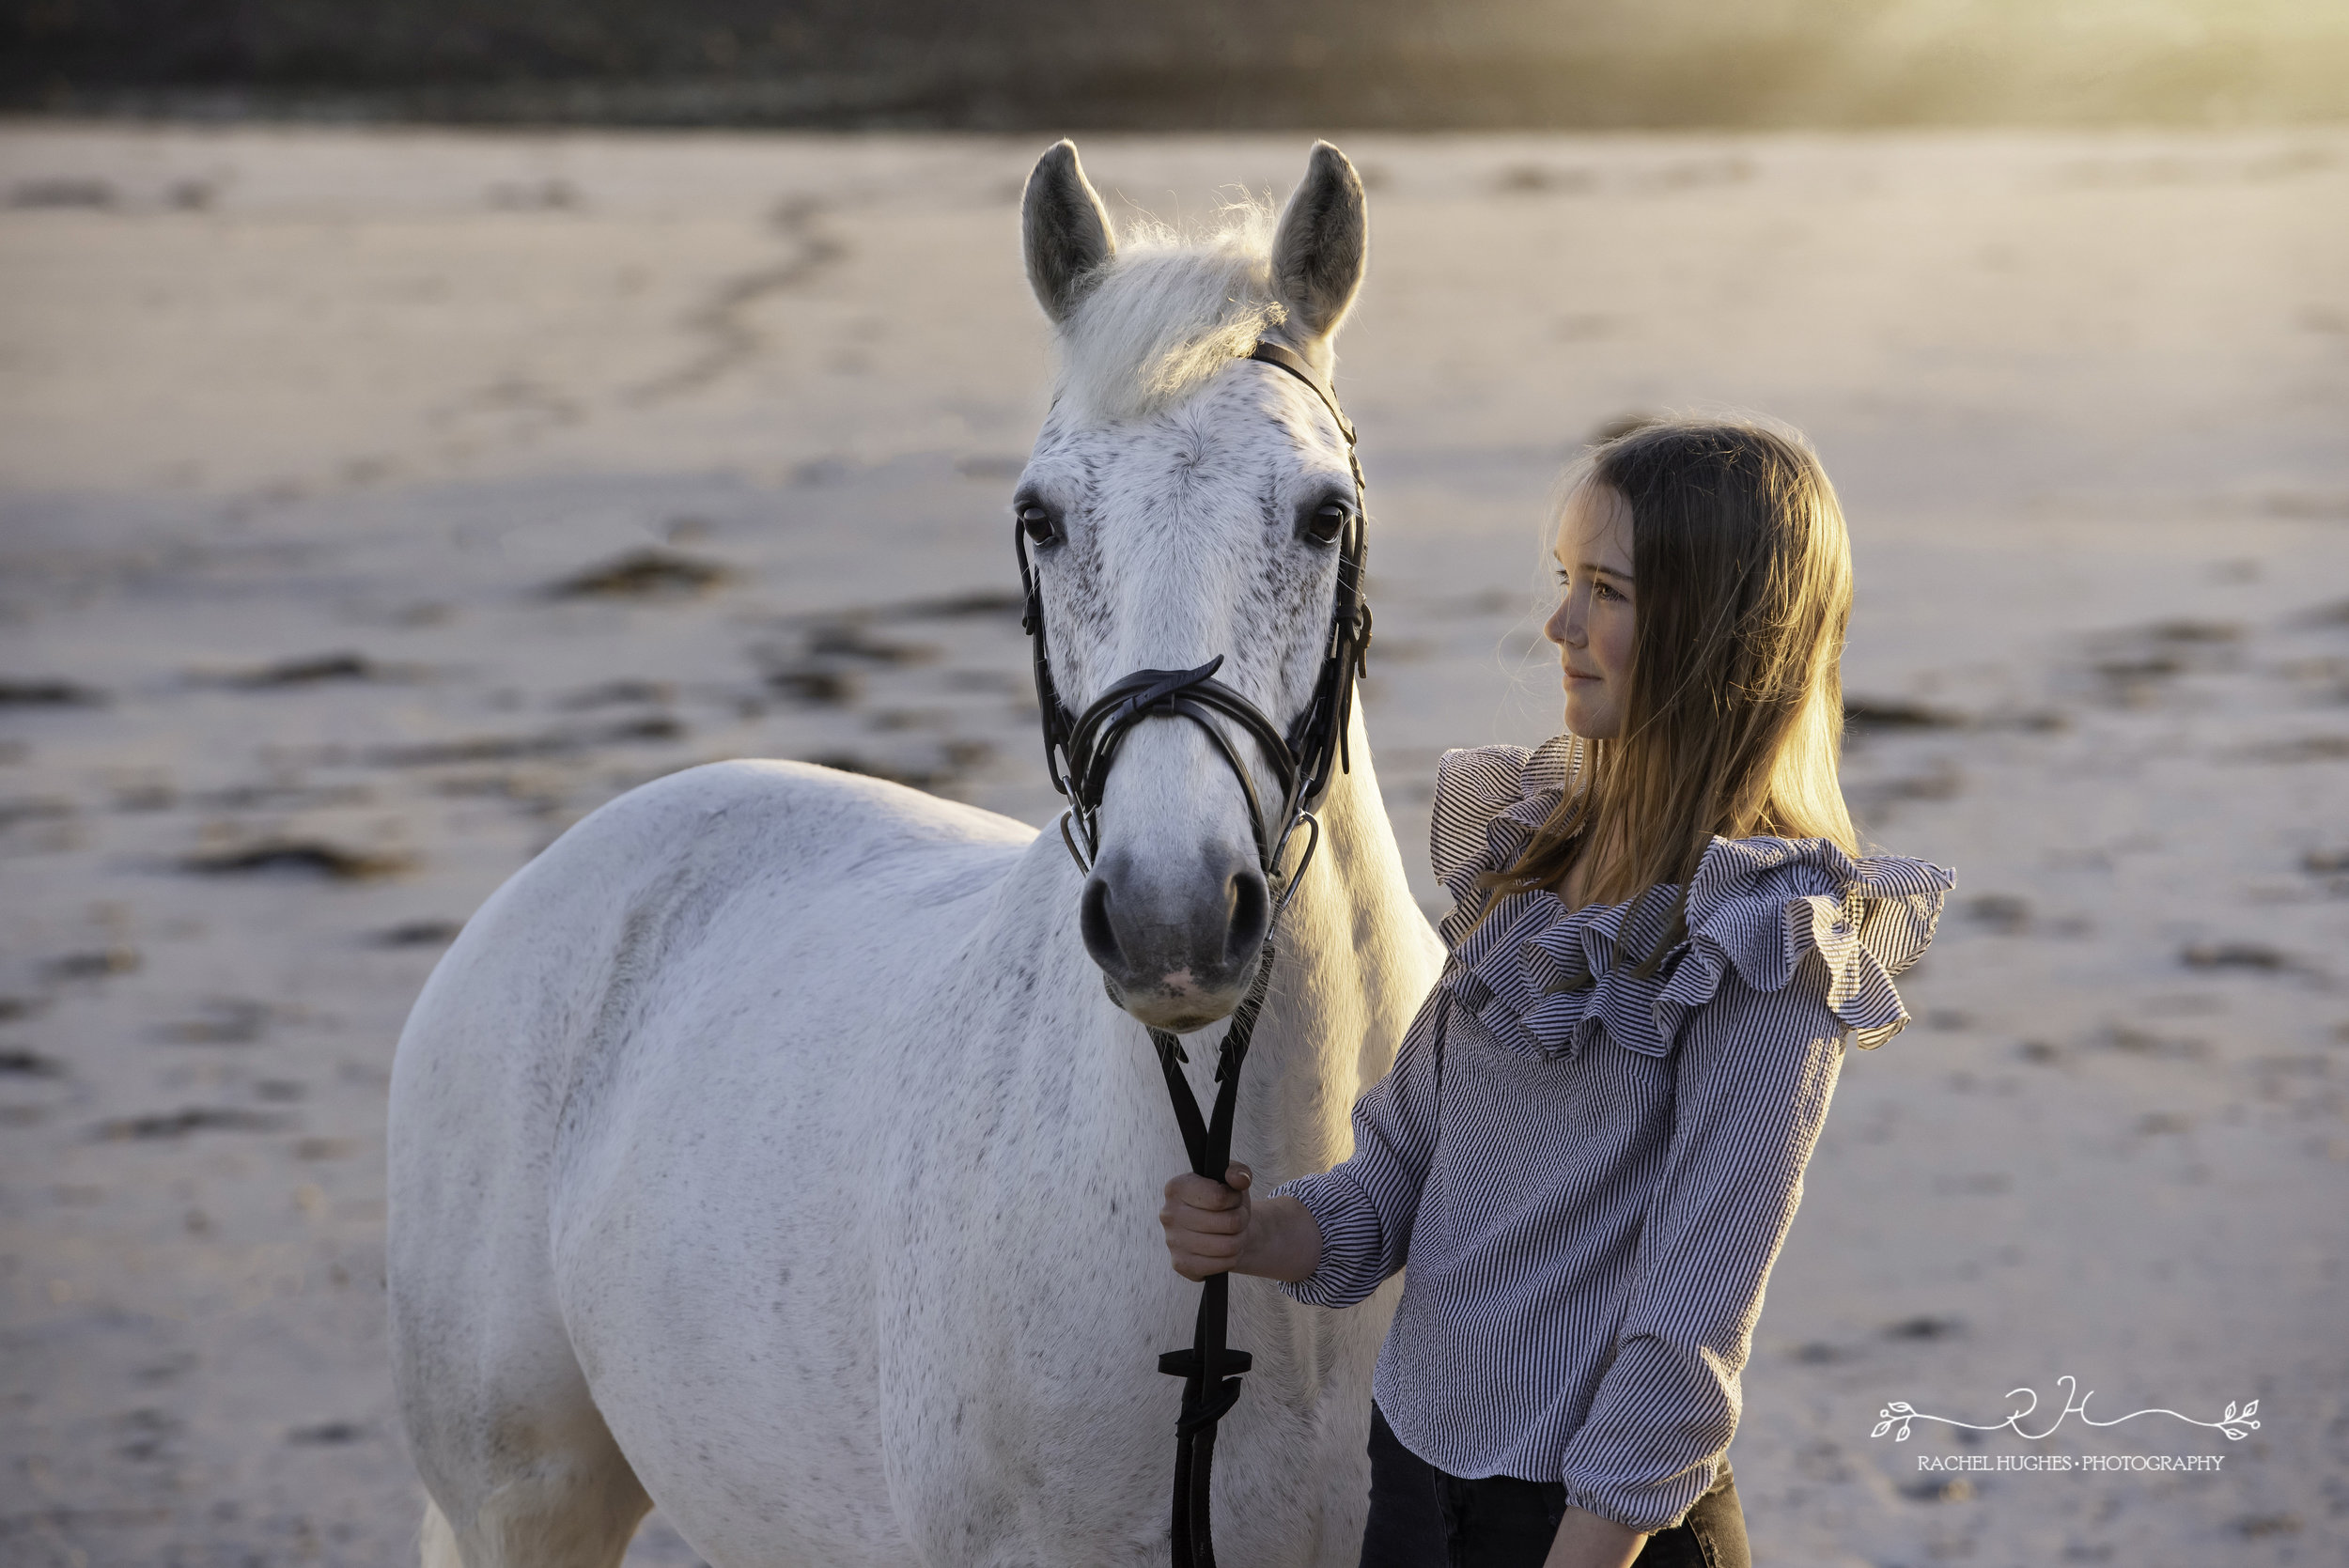 Jersey photographer - girl and horse on beach